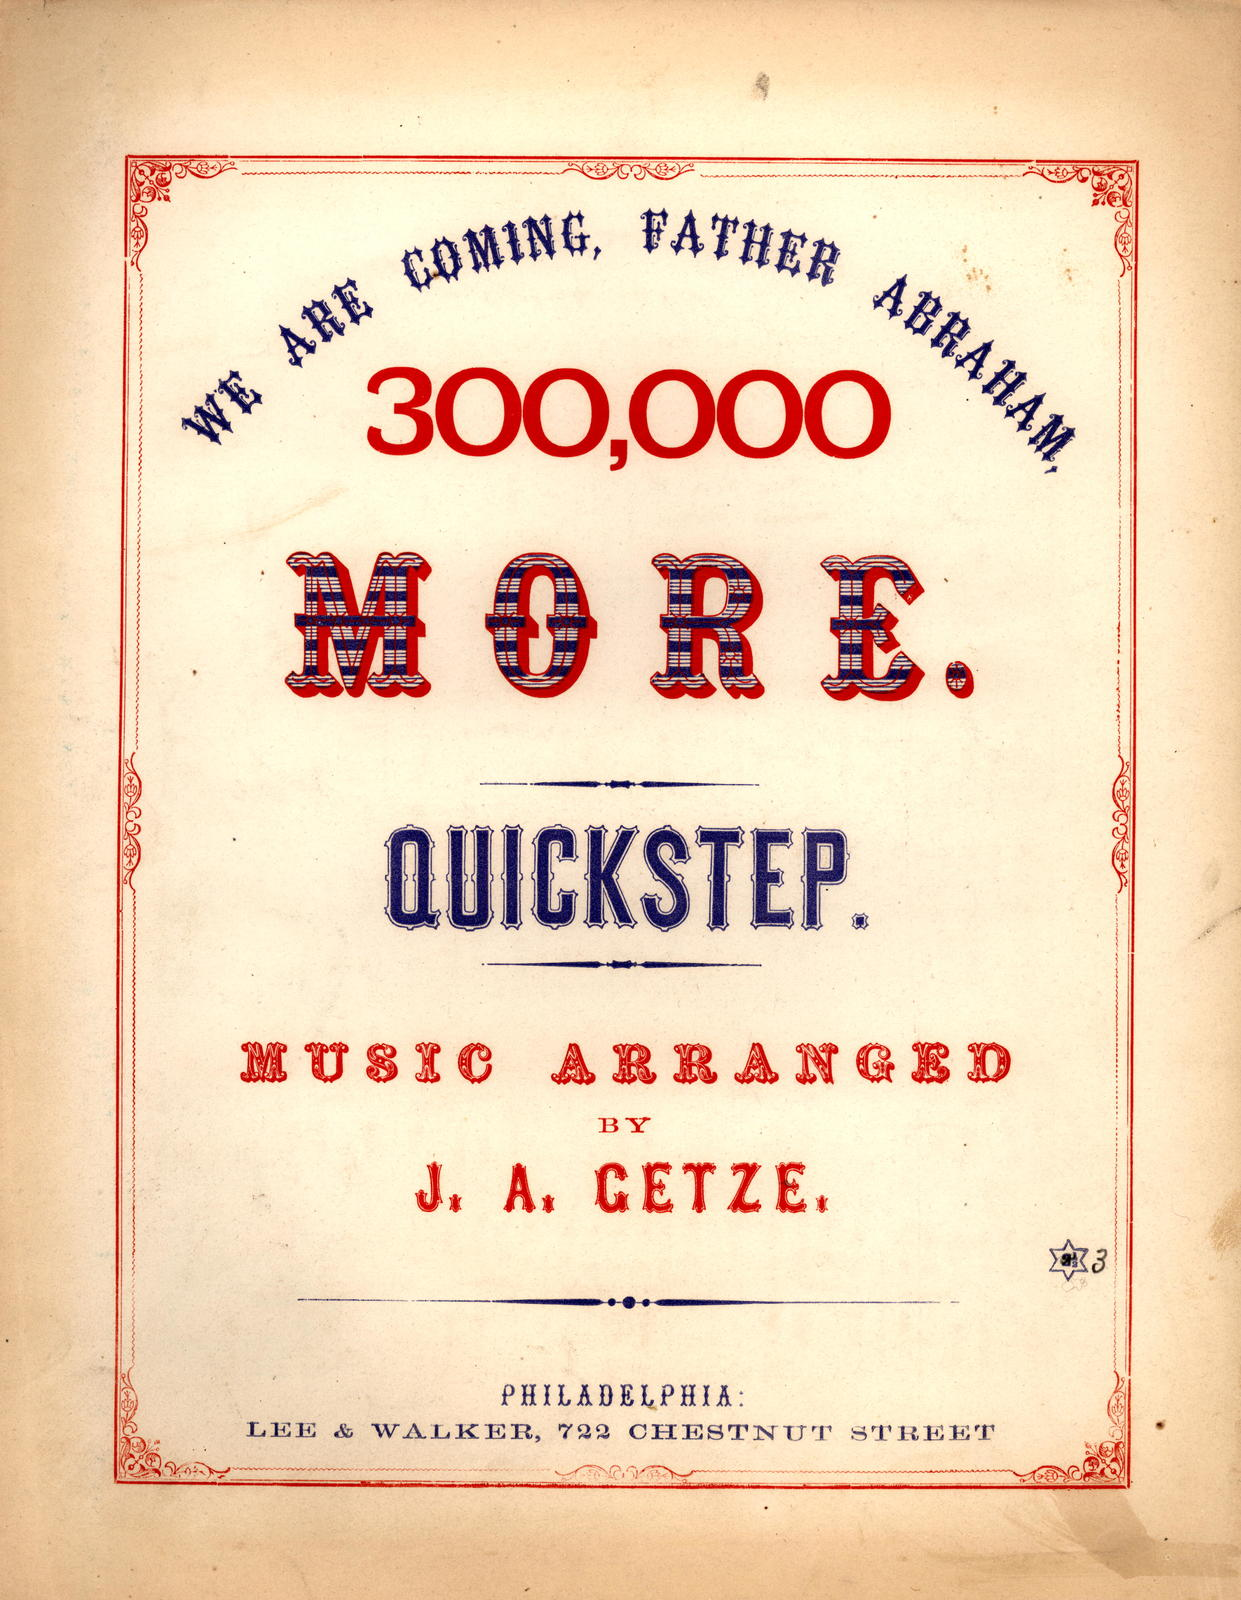 We are coming, Father Abraham, 300,000 more: quickstep music arranged by J.A. Getze.